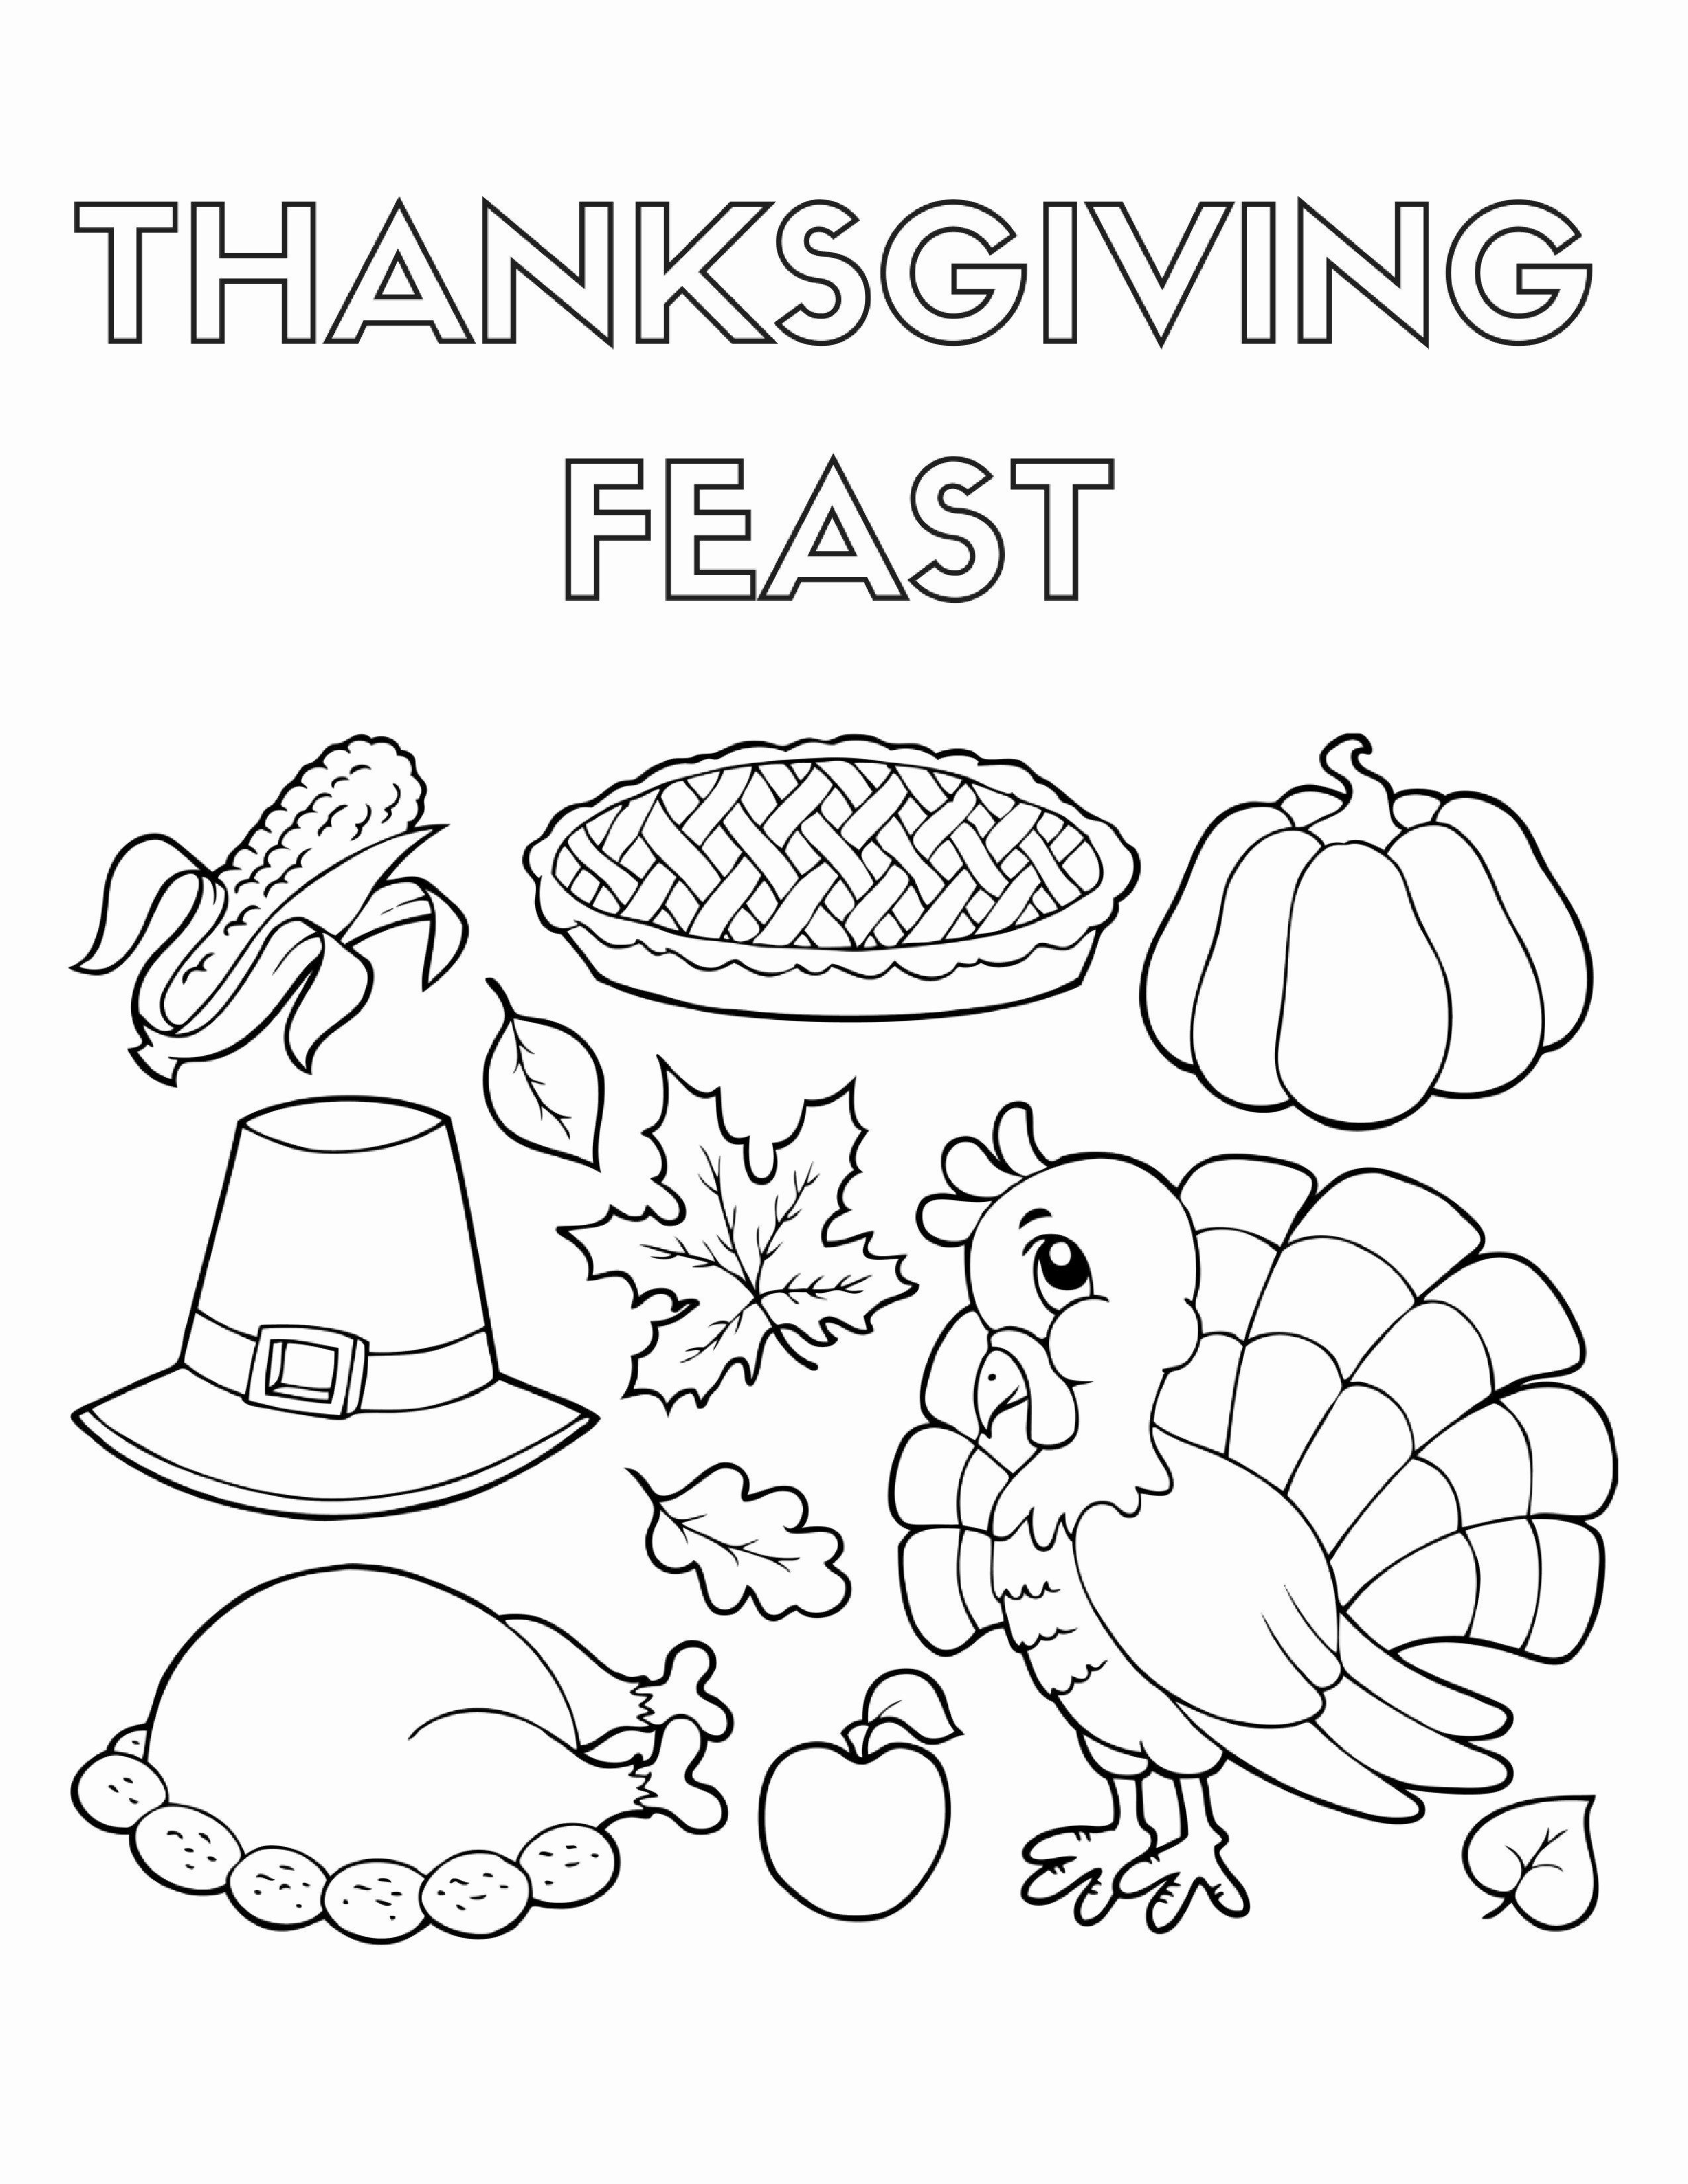 Cartoon Coloring Book Pdf Download Awesome Coloring Pages And Books Thanksgiving Coloring In 2020 Food Coloring Pages Thanksgiving Coloring Pages Turkey Coloring Pages